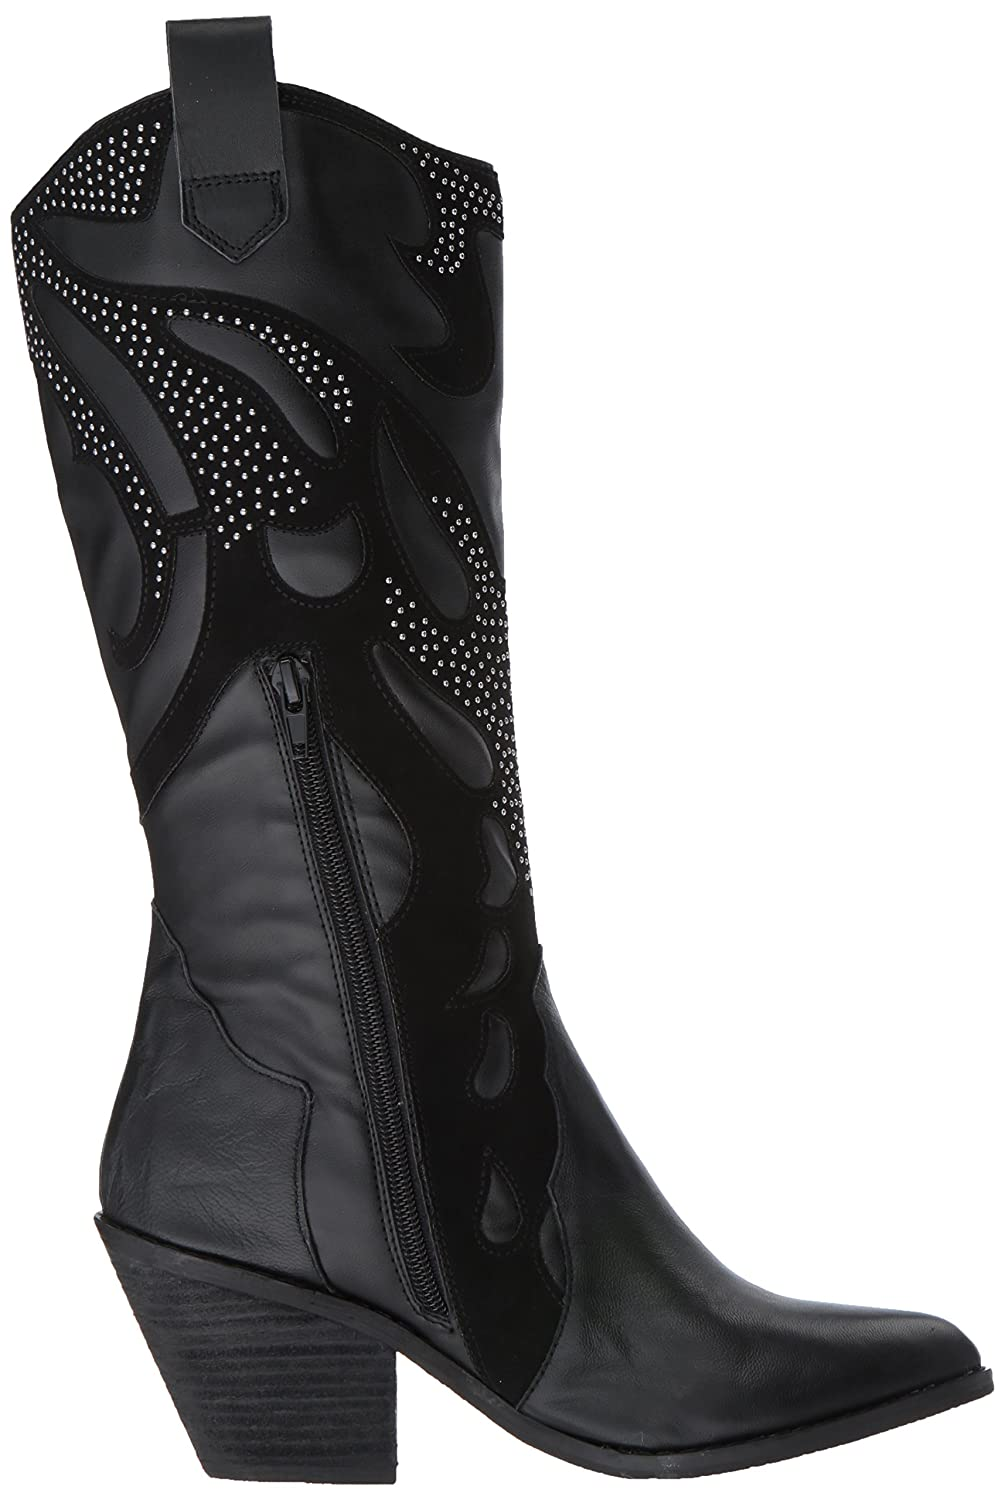 Carlos by Carlos Santana Women's Axel Western Boot B072J9251R 7.5 B(M) US|Black